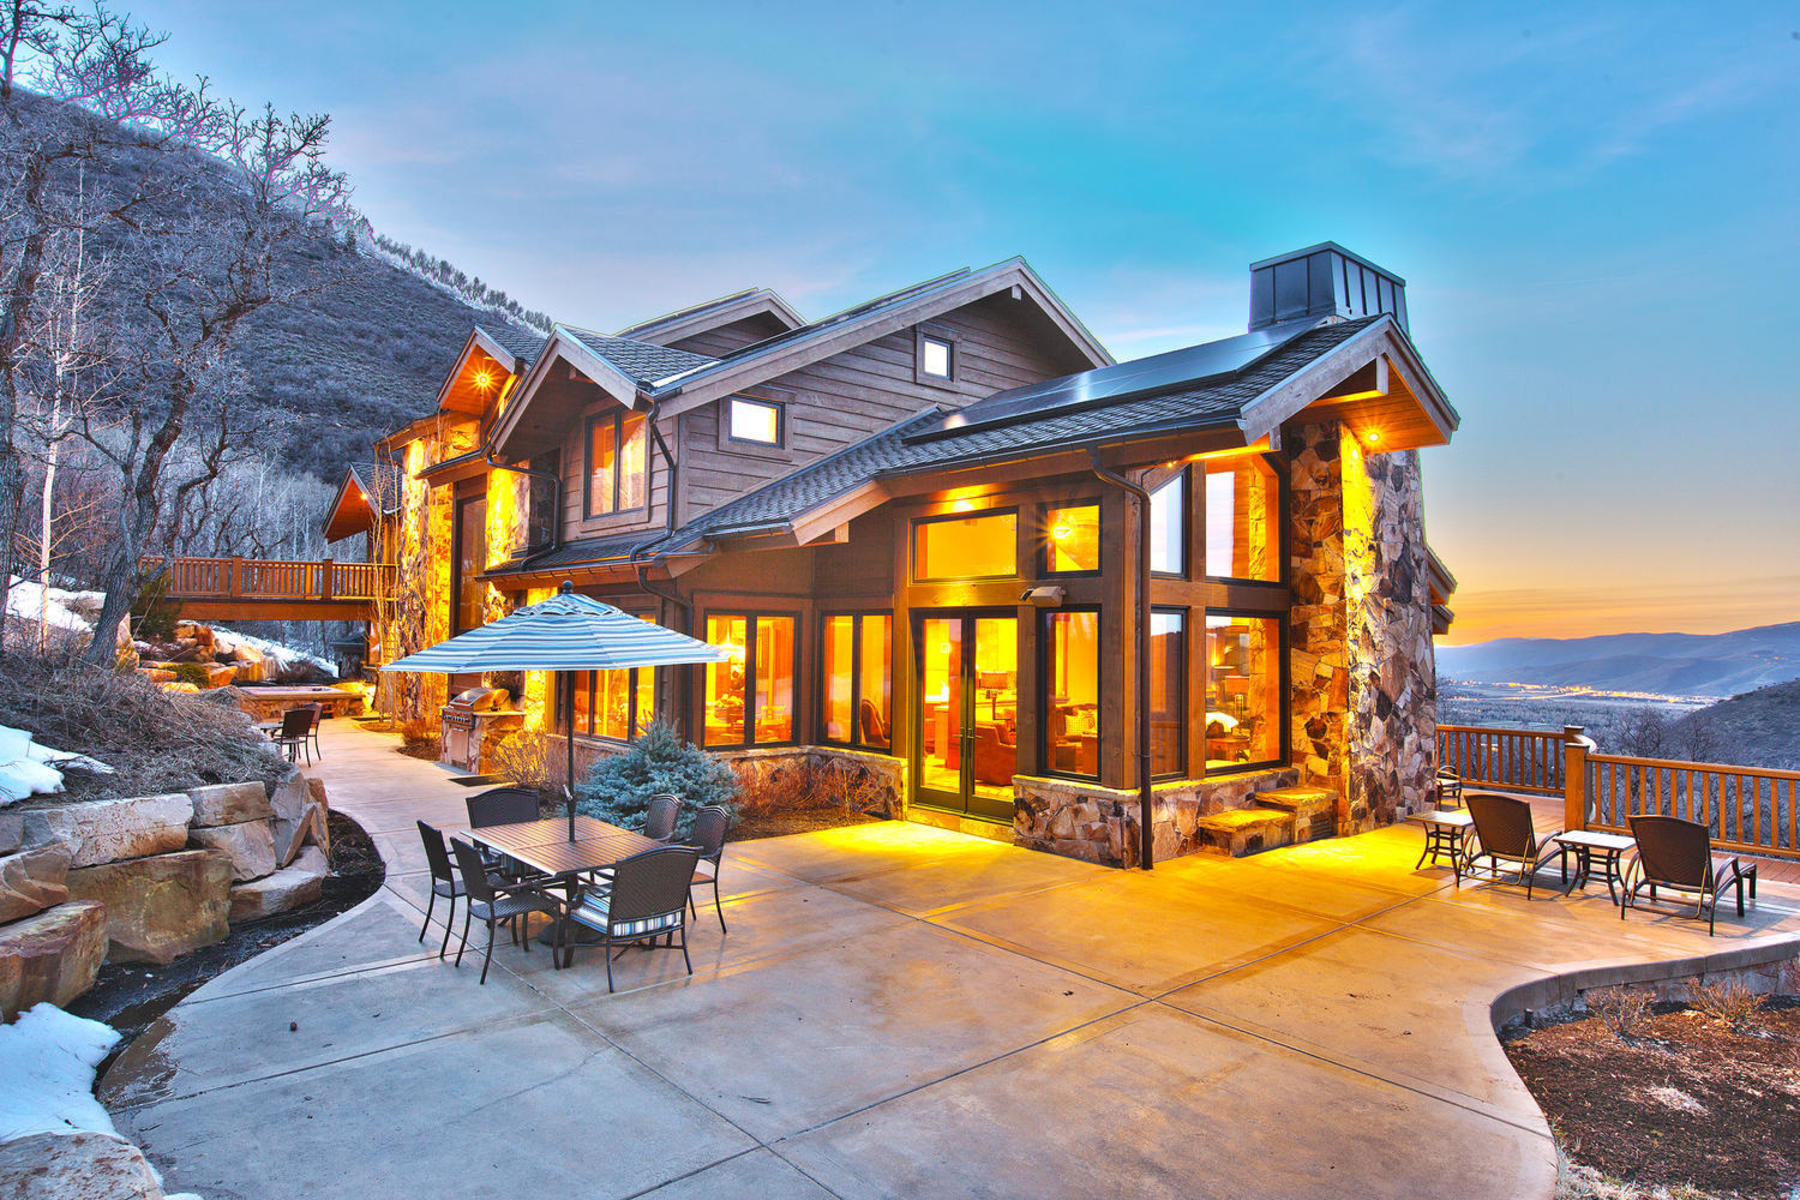 Single Family Home for Sale at Timeless Elegance at the Top of Aspen Springs 25 Canyon Ct Park City, Utah 84060 United States